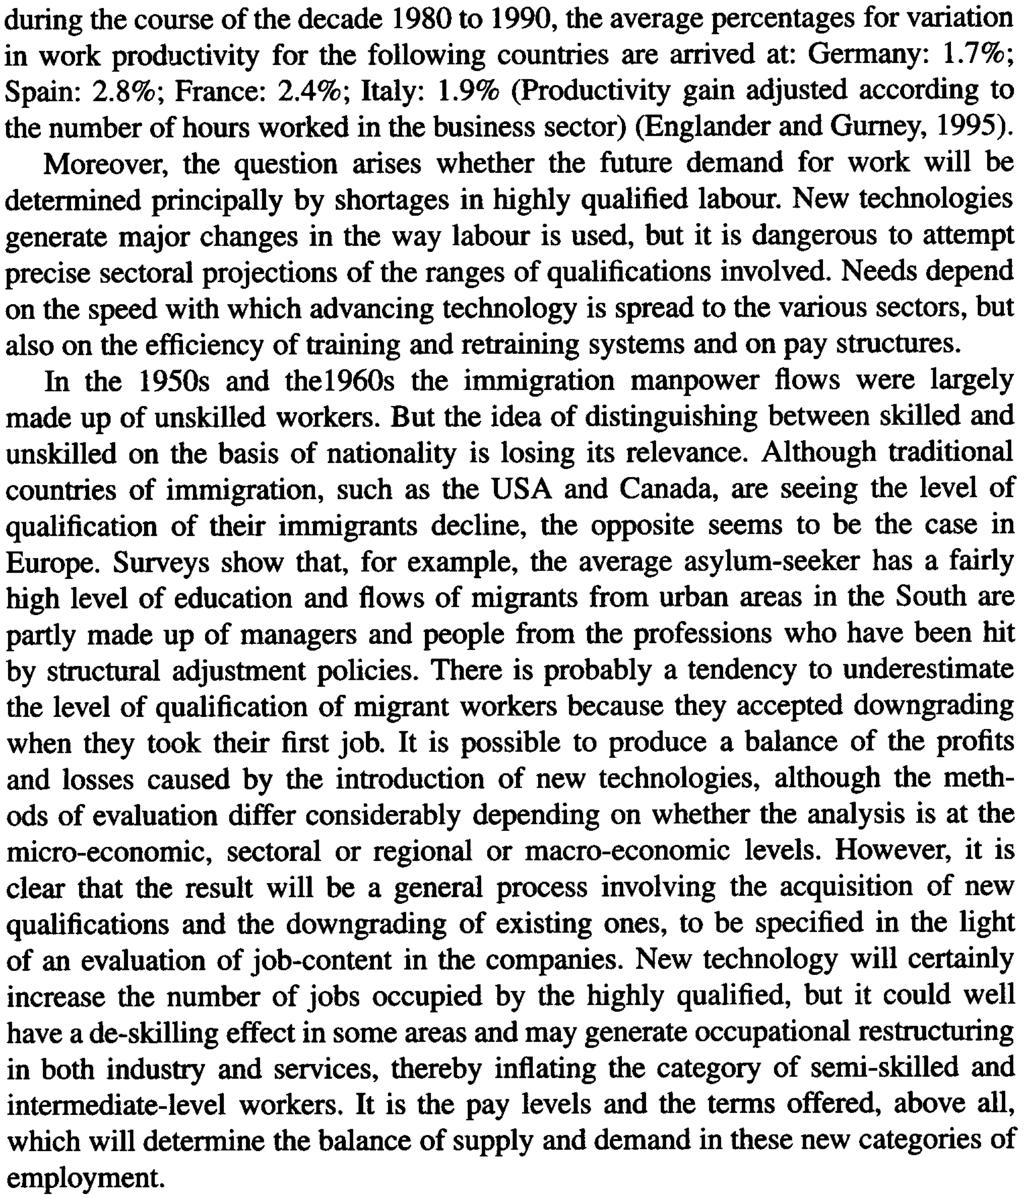 34 SERGEFELD during the course of the decade 1980 to 1990, the average percentages for variation in work productivity for the following countries are arrived at: Germany: 1.7%; Spain: 2.8%; France: 2.